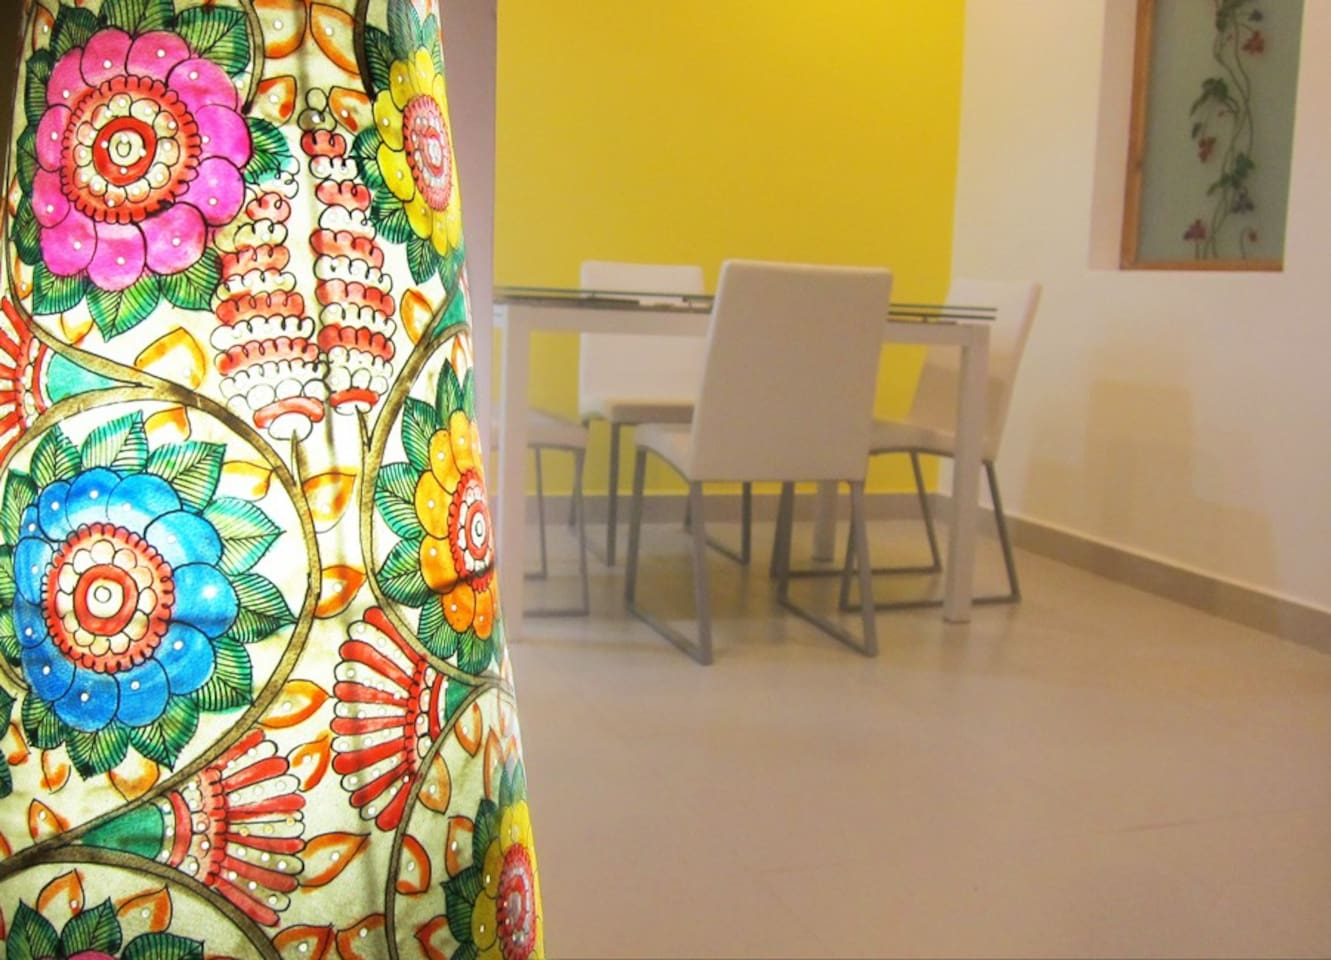 Mango House Vizag: Hand-painted leather lampshades add a colourful taste of Indian art